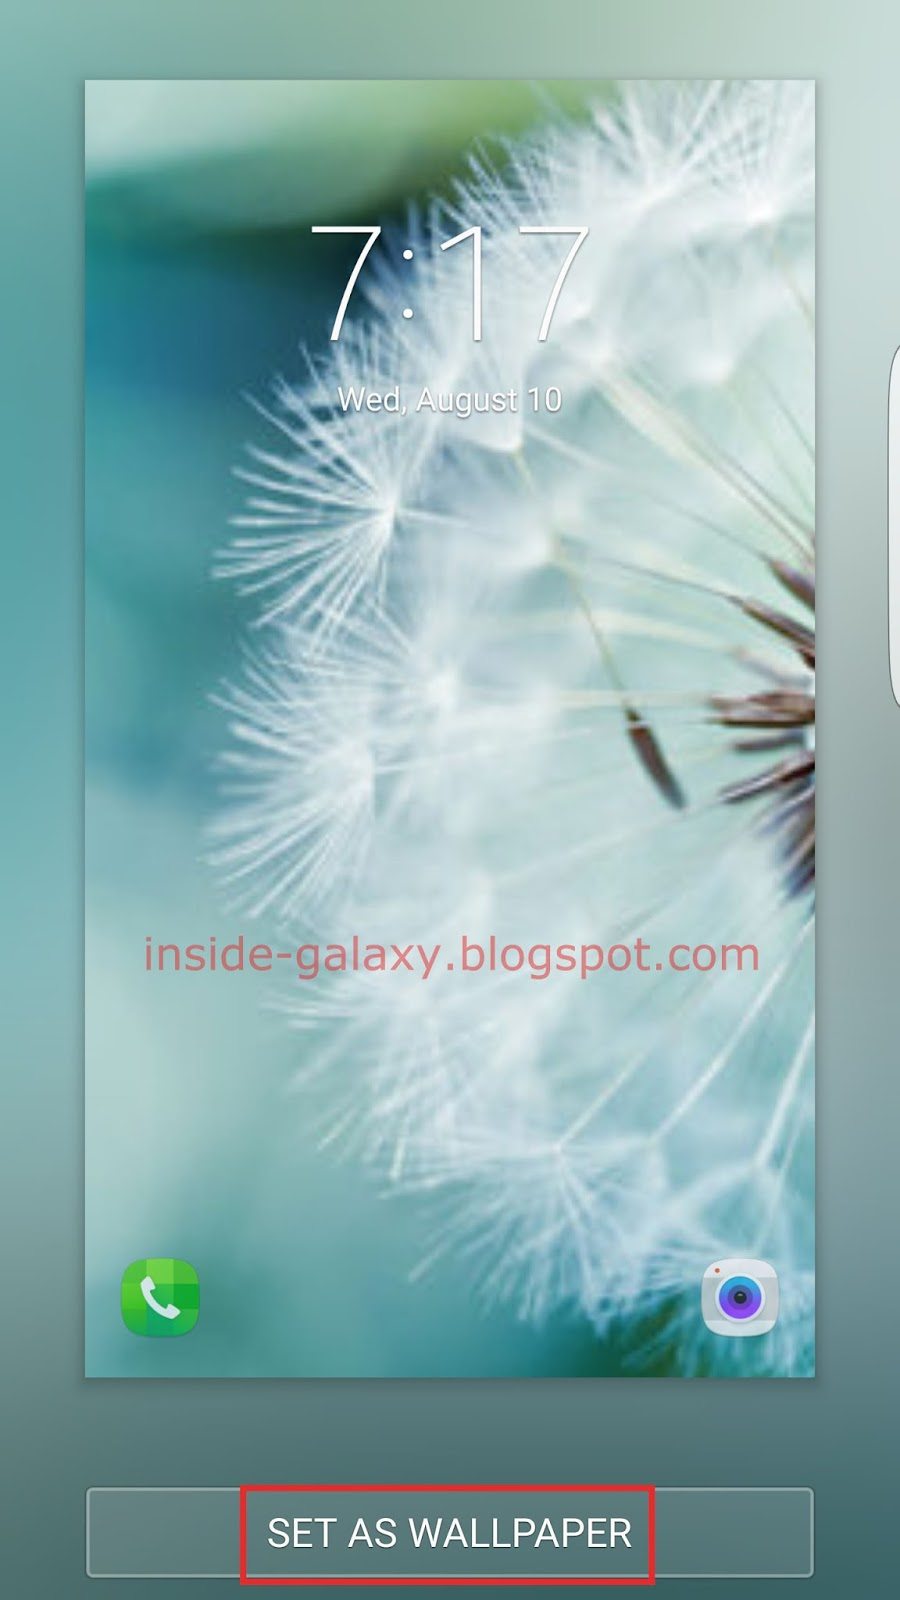 Inside Galaxy Samsung Galaxy S7 Edge How To Change Lock Screen Wallpaper In Android 6 0 1 Marshmallow